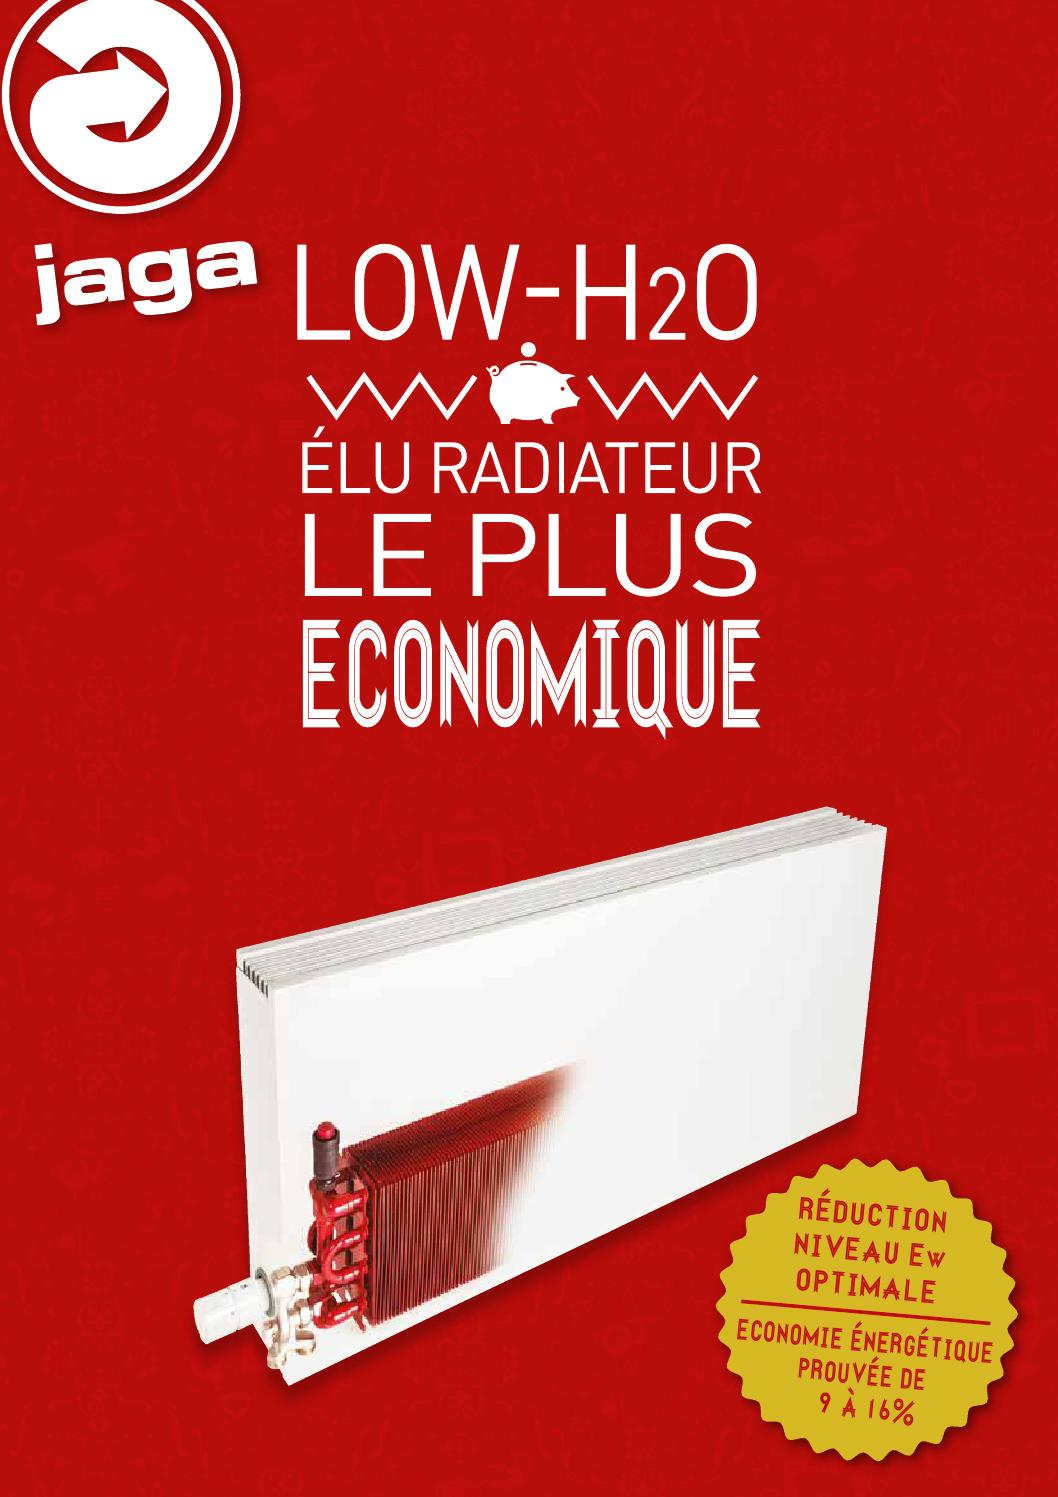 jaga low h2o radiateur le plus economique 2014 by jaga experience issuu. Black Bedroom Furniture Sets. Home Design Ideas